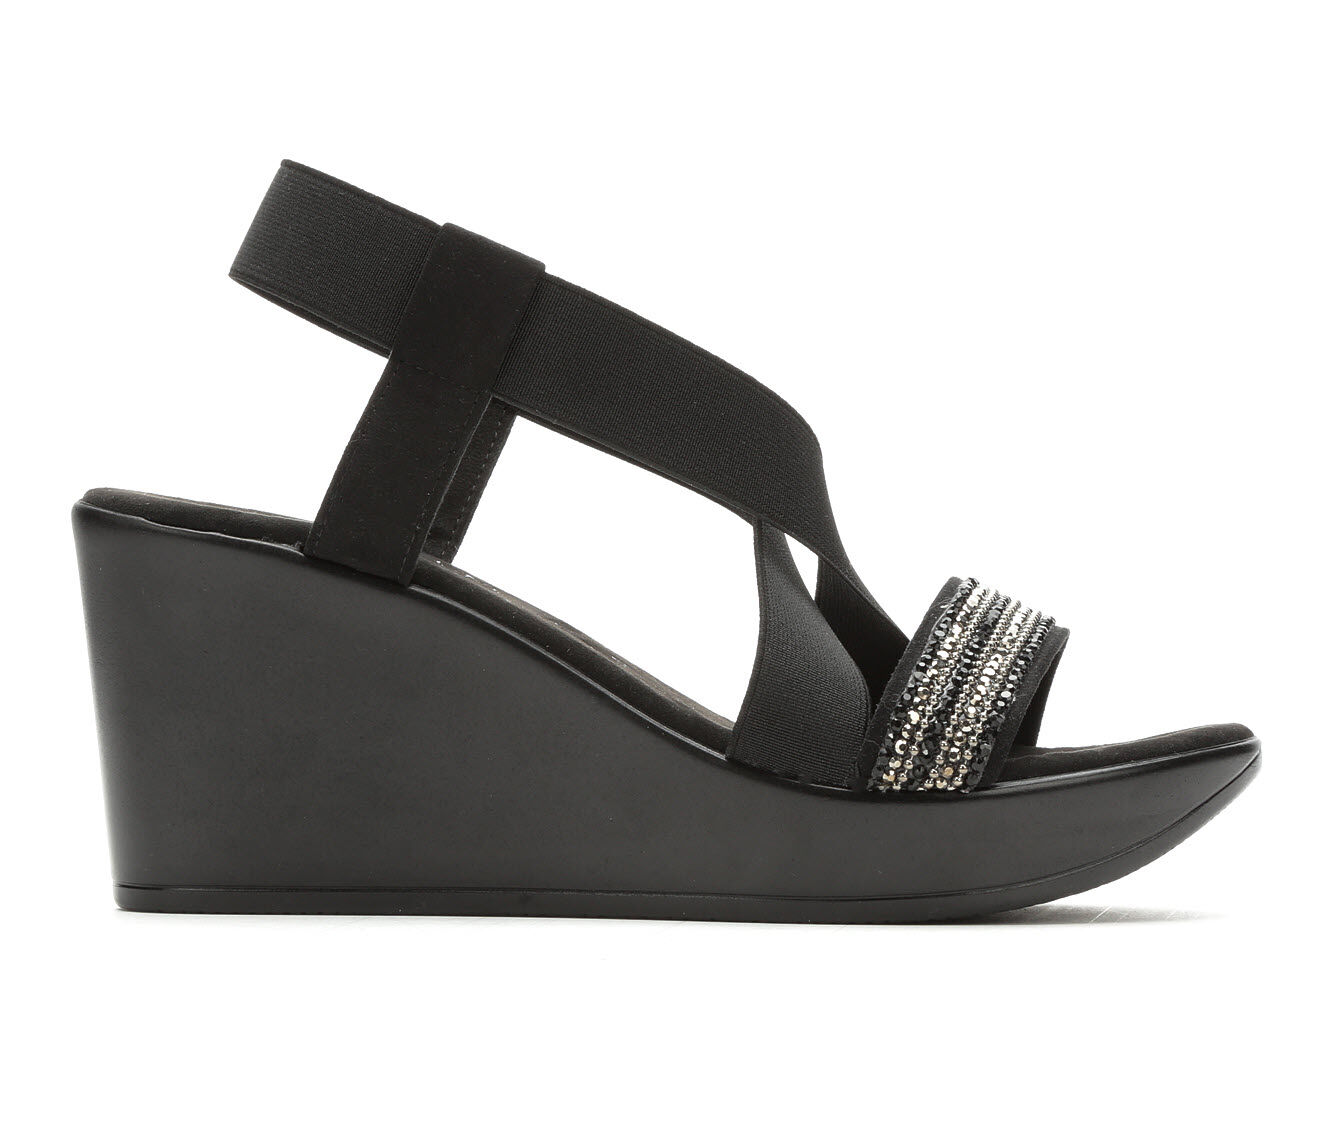 Women's Italian Shoemakers Accent Strappy Wedge Sandals Black